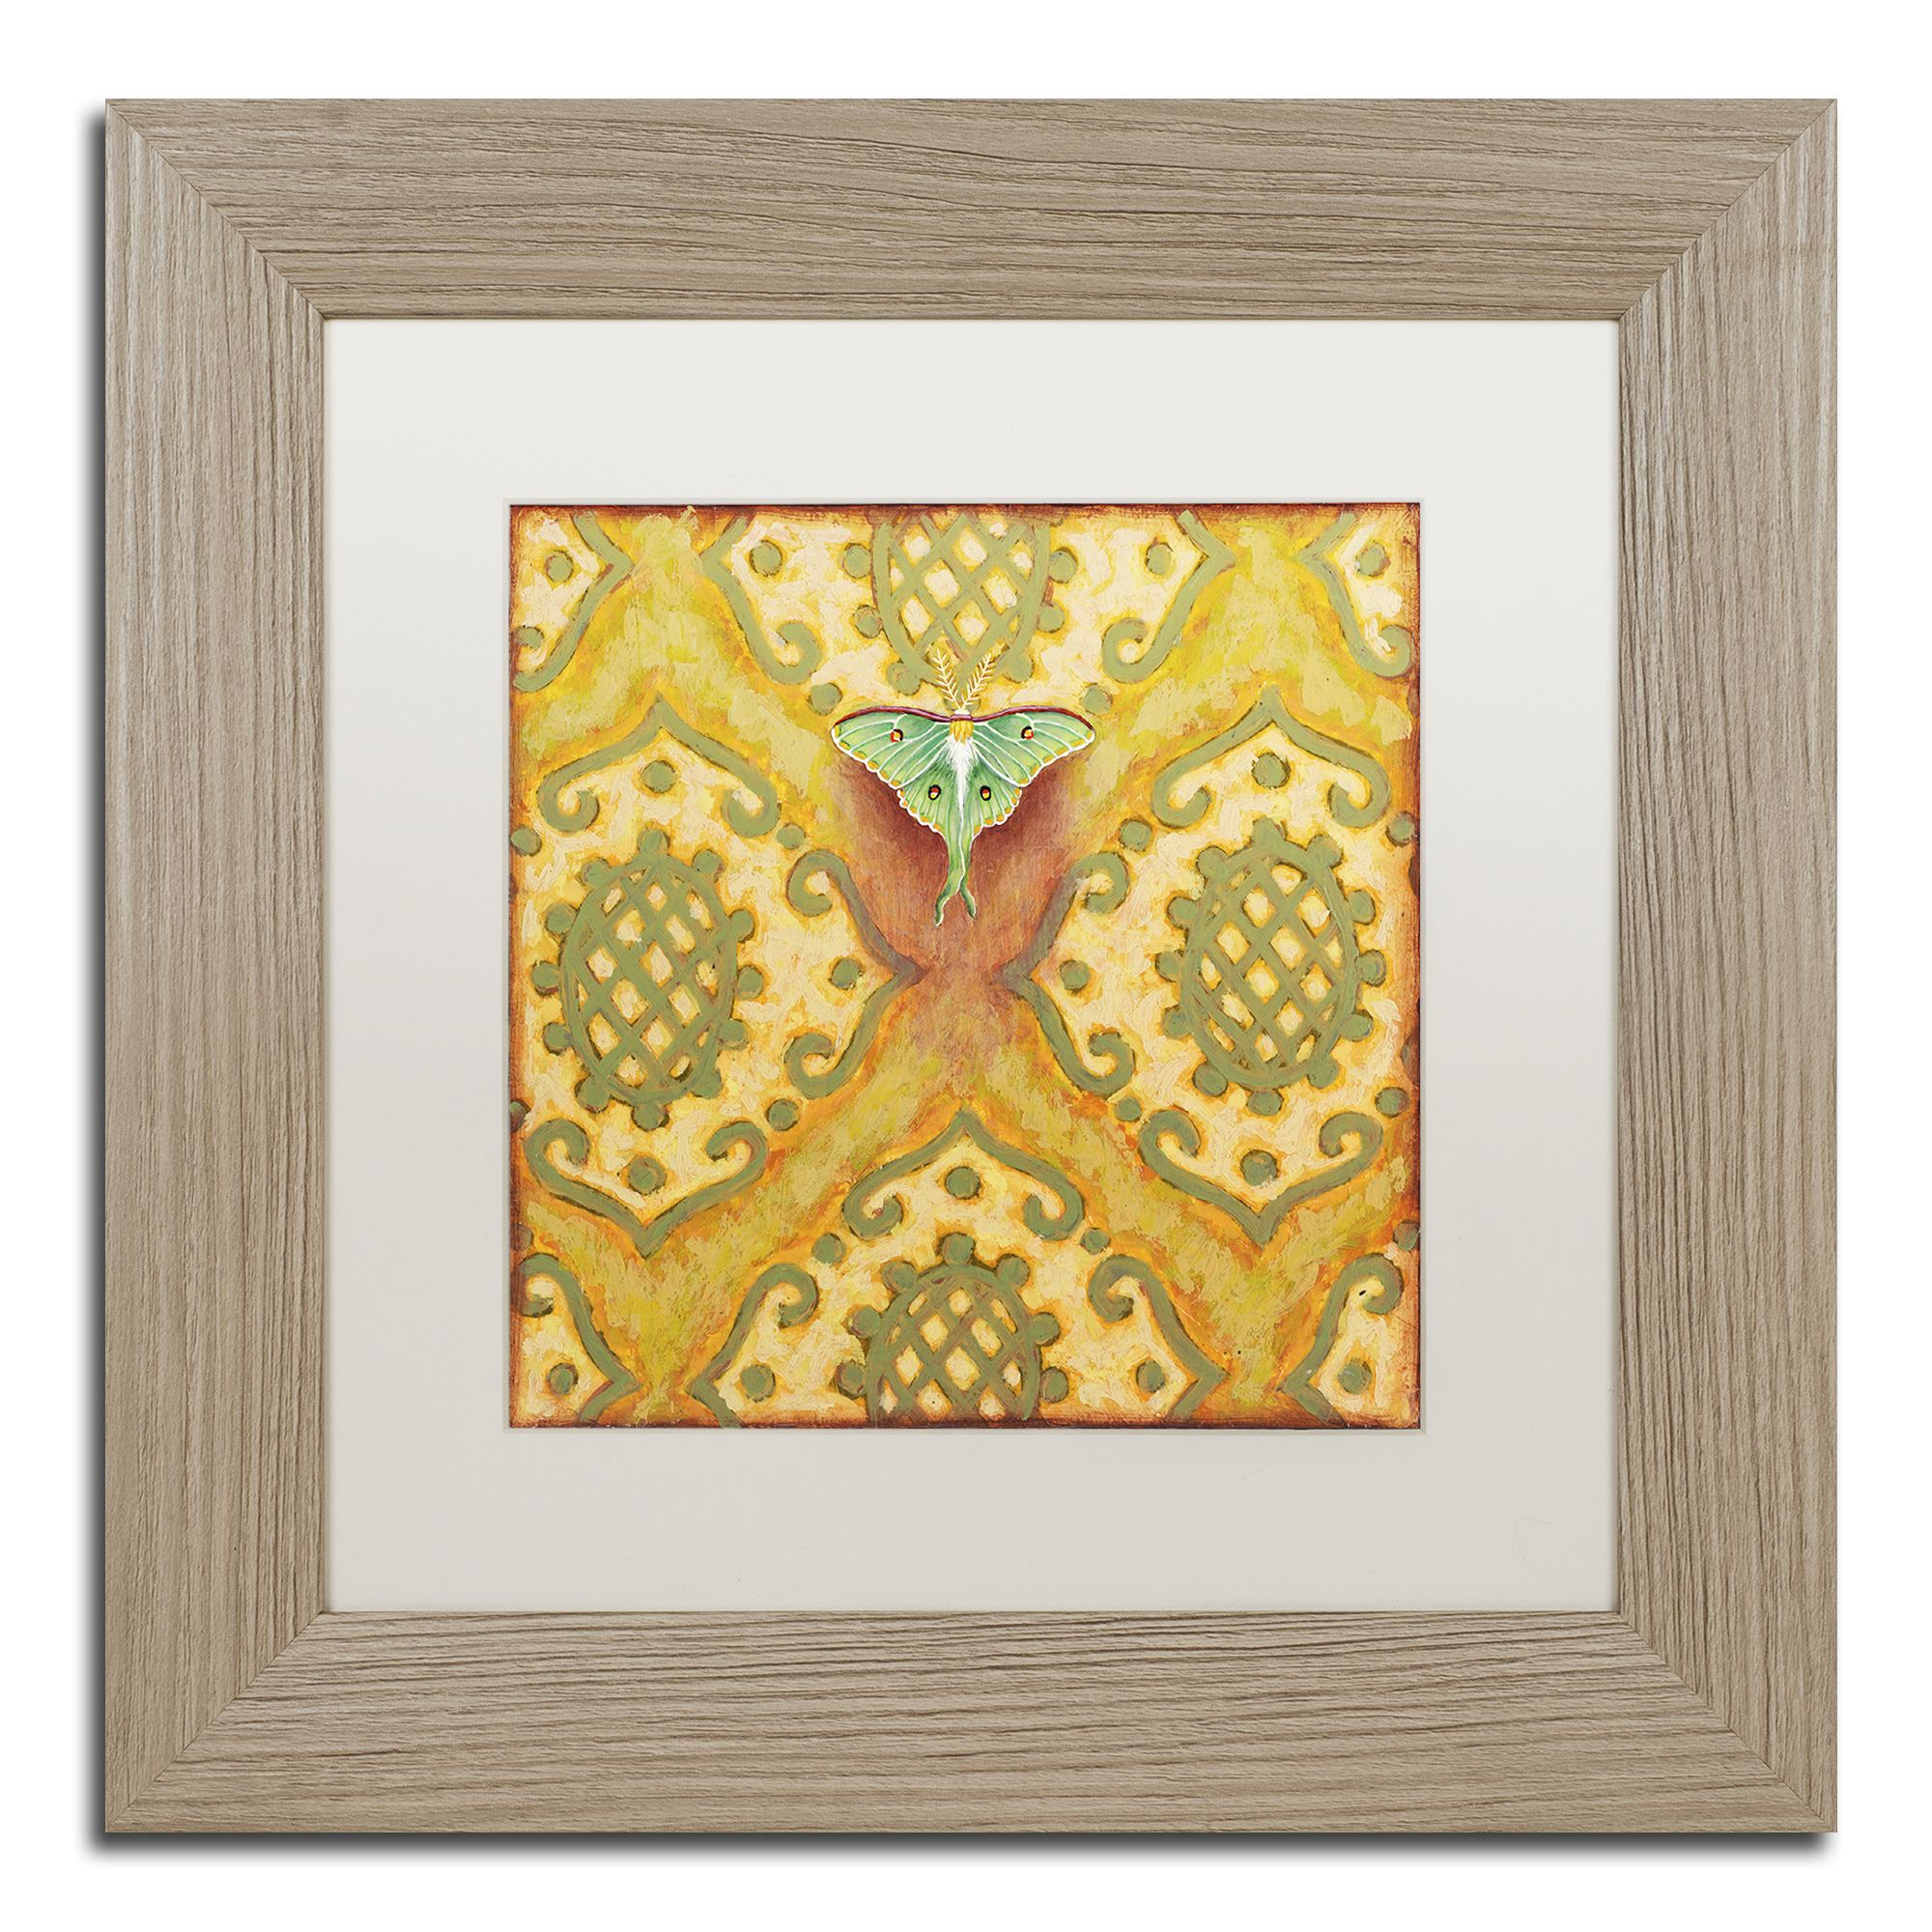 Rachel Paxton \'Bayberry Luna Moth\' Matted Framed Art | Products ...